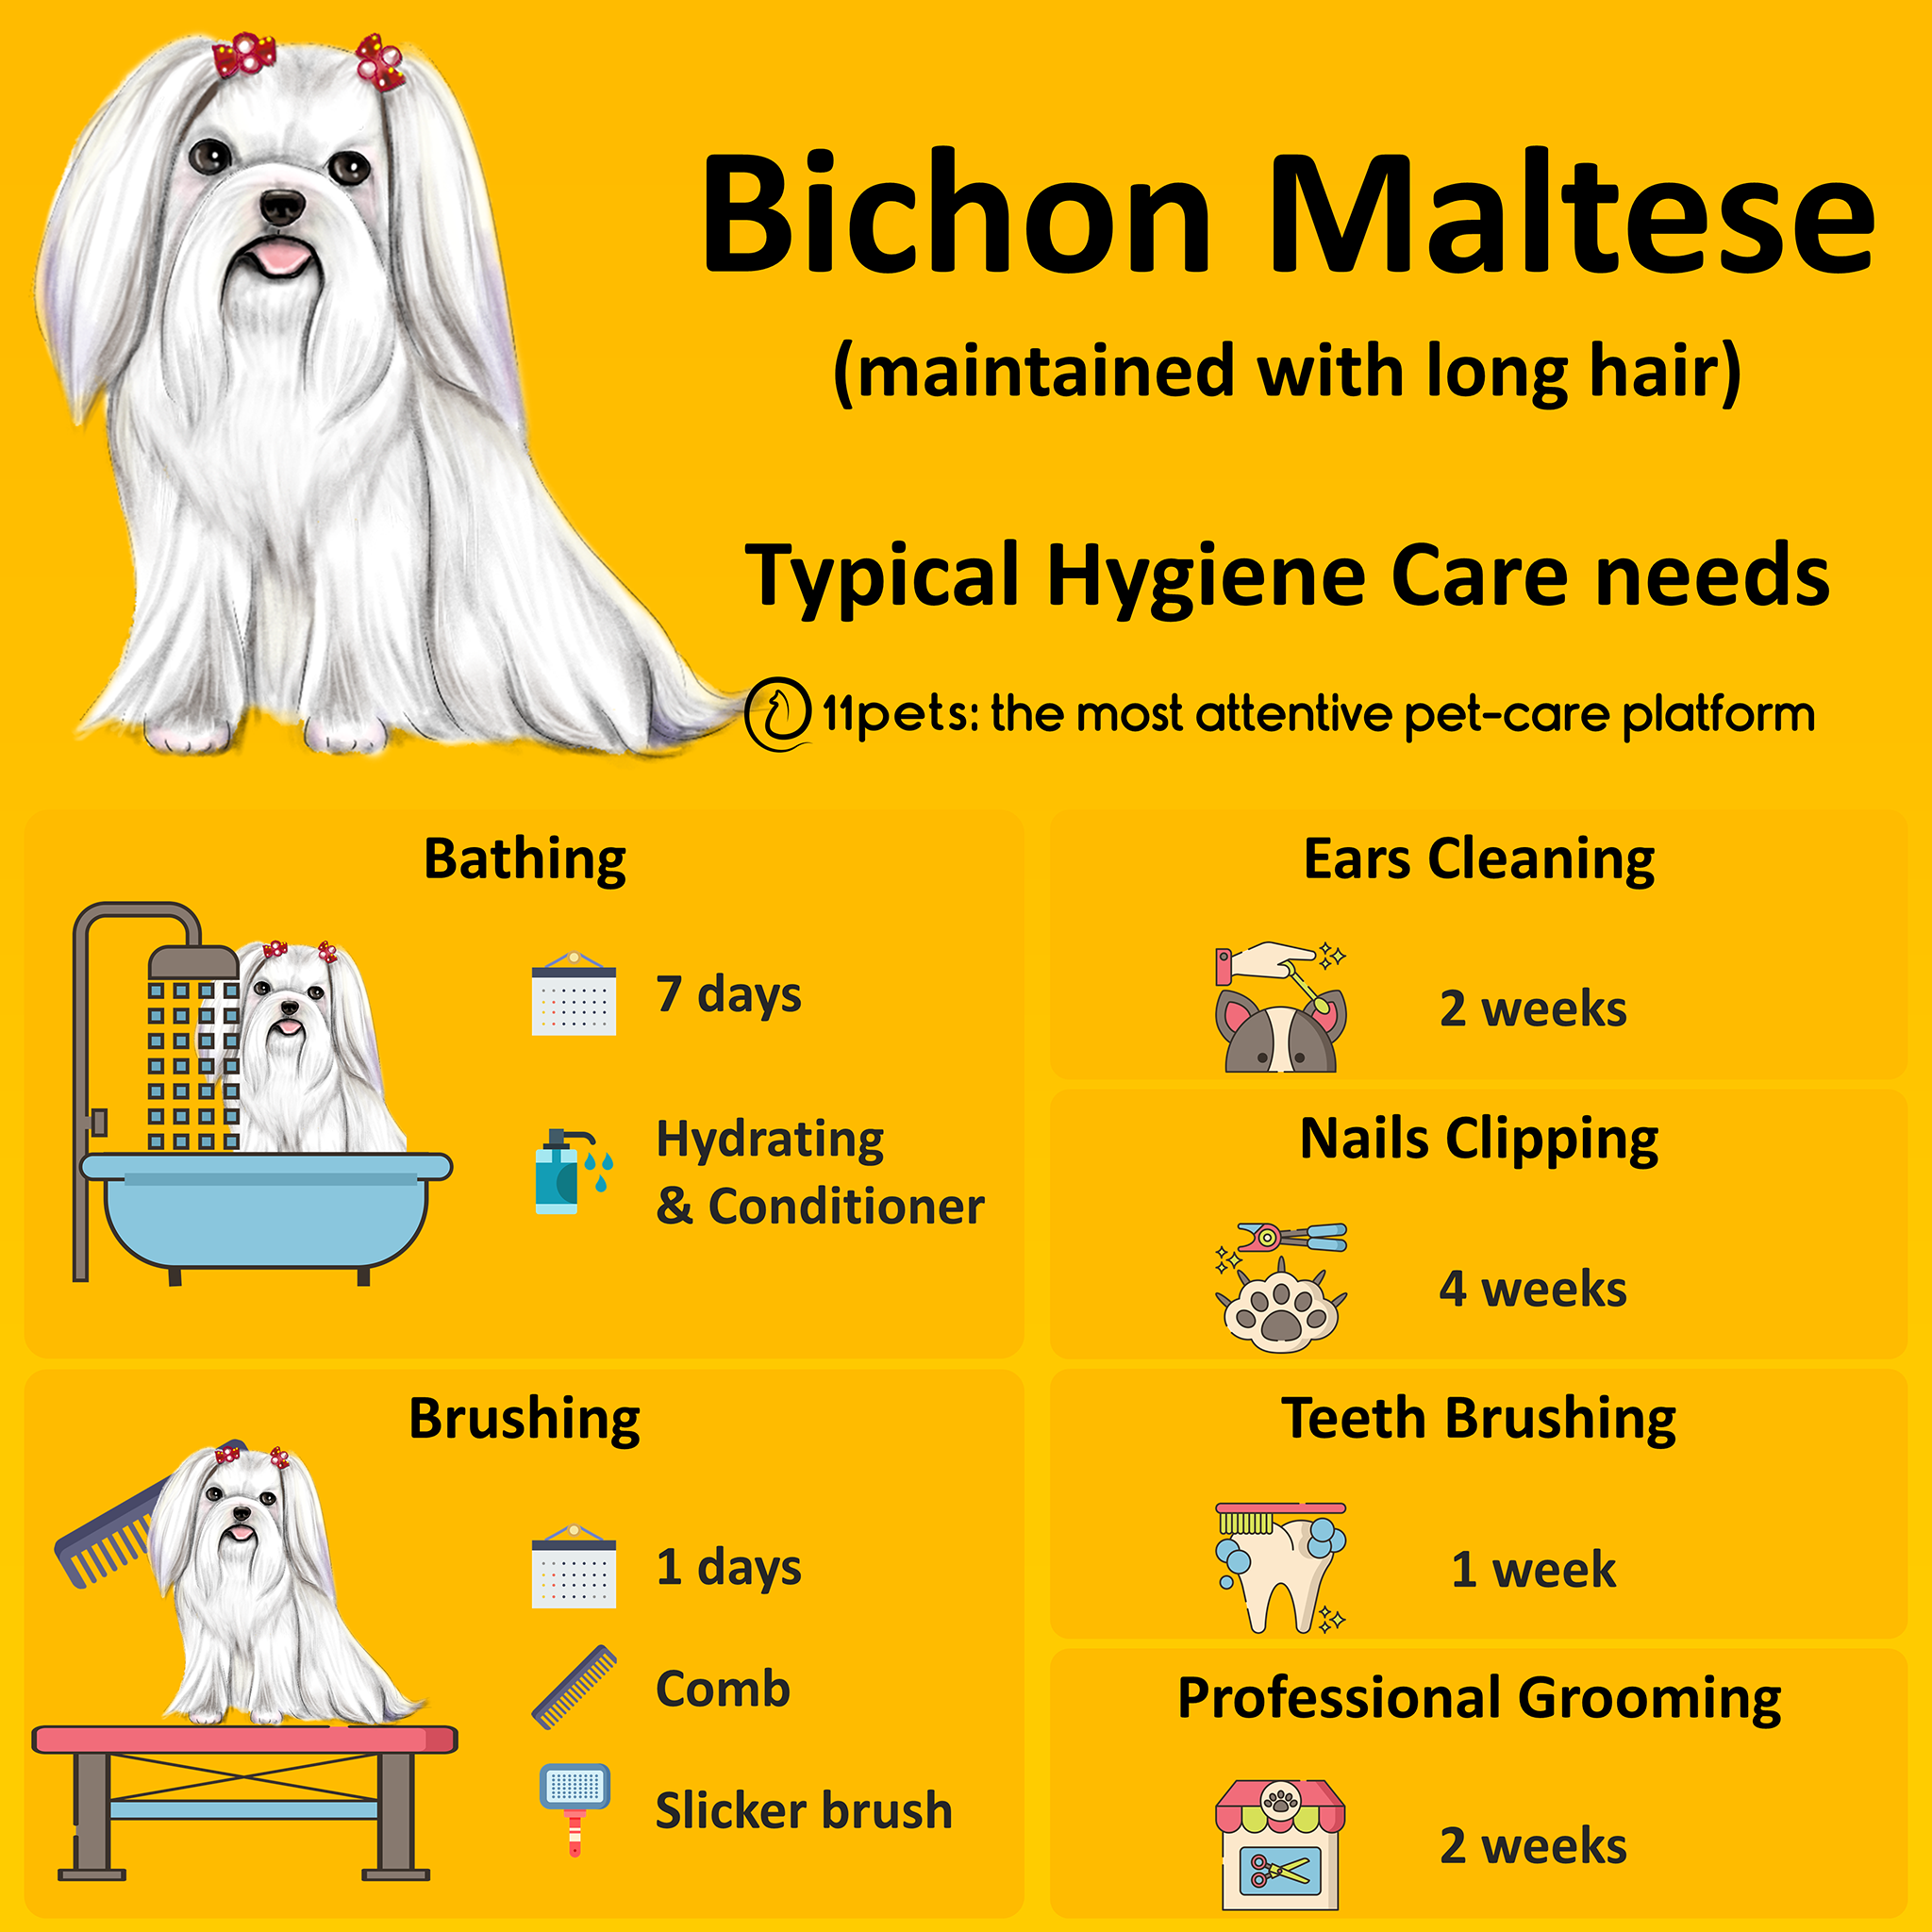 Bichon Maltese How To Care For Its Hygiene Needs 11pets